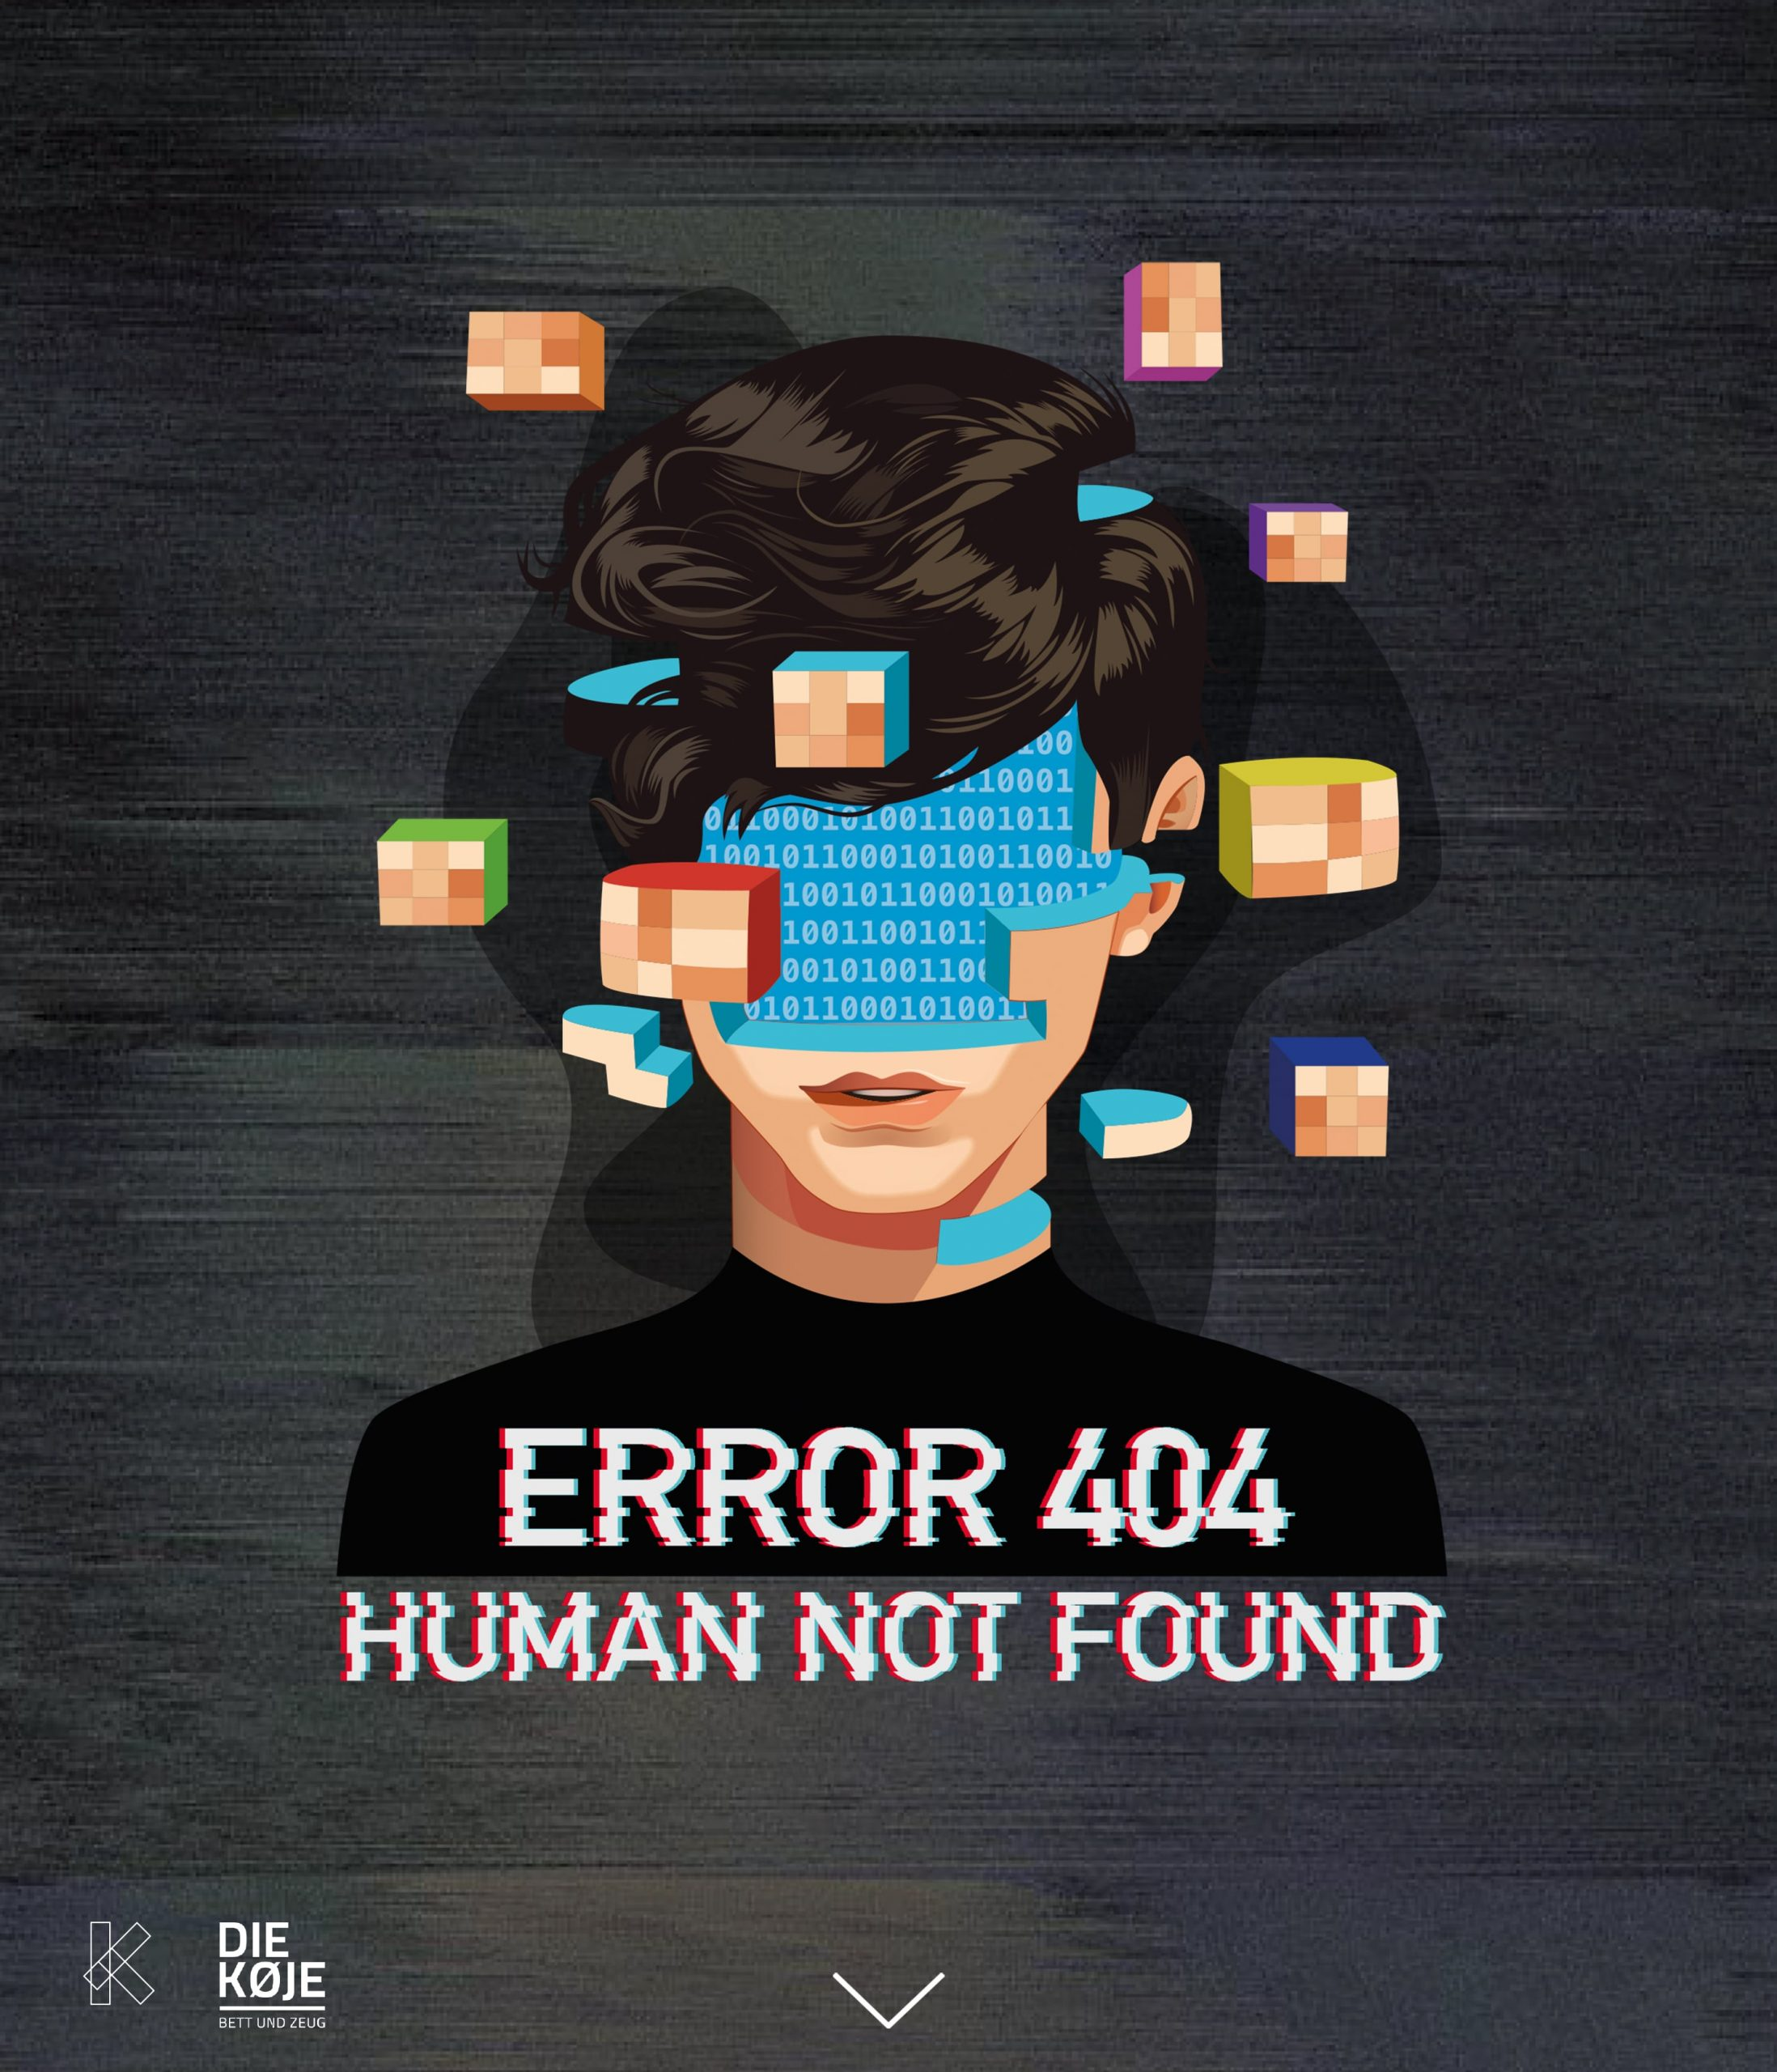 404 - Human not found